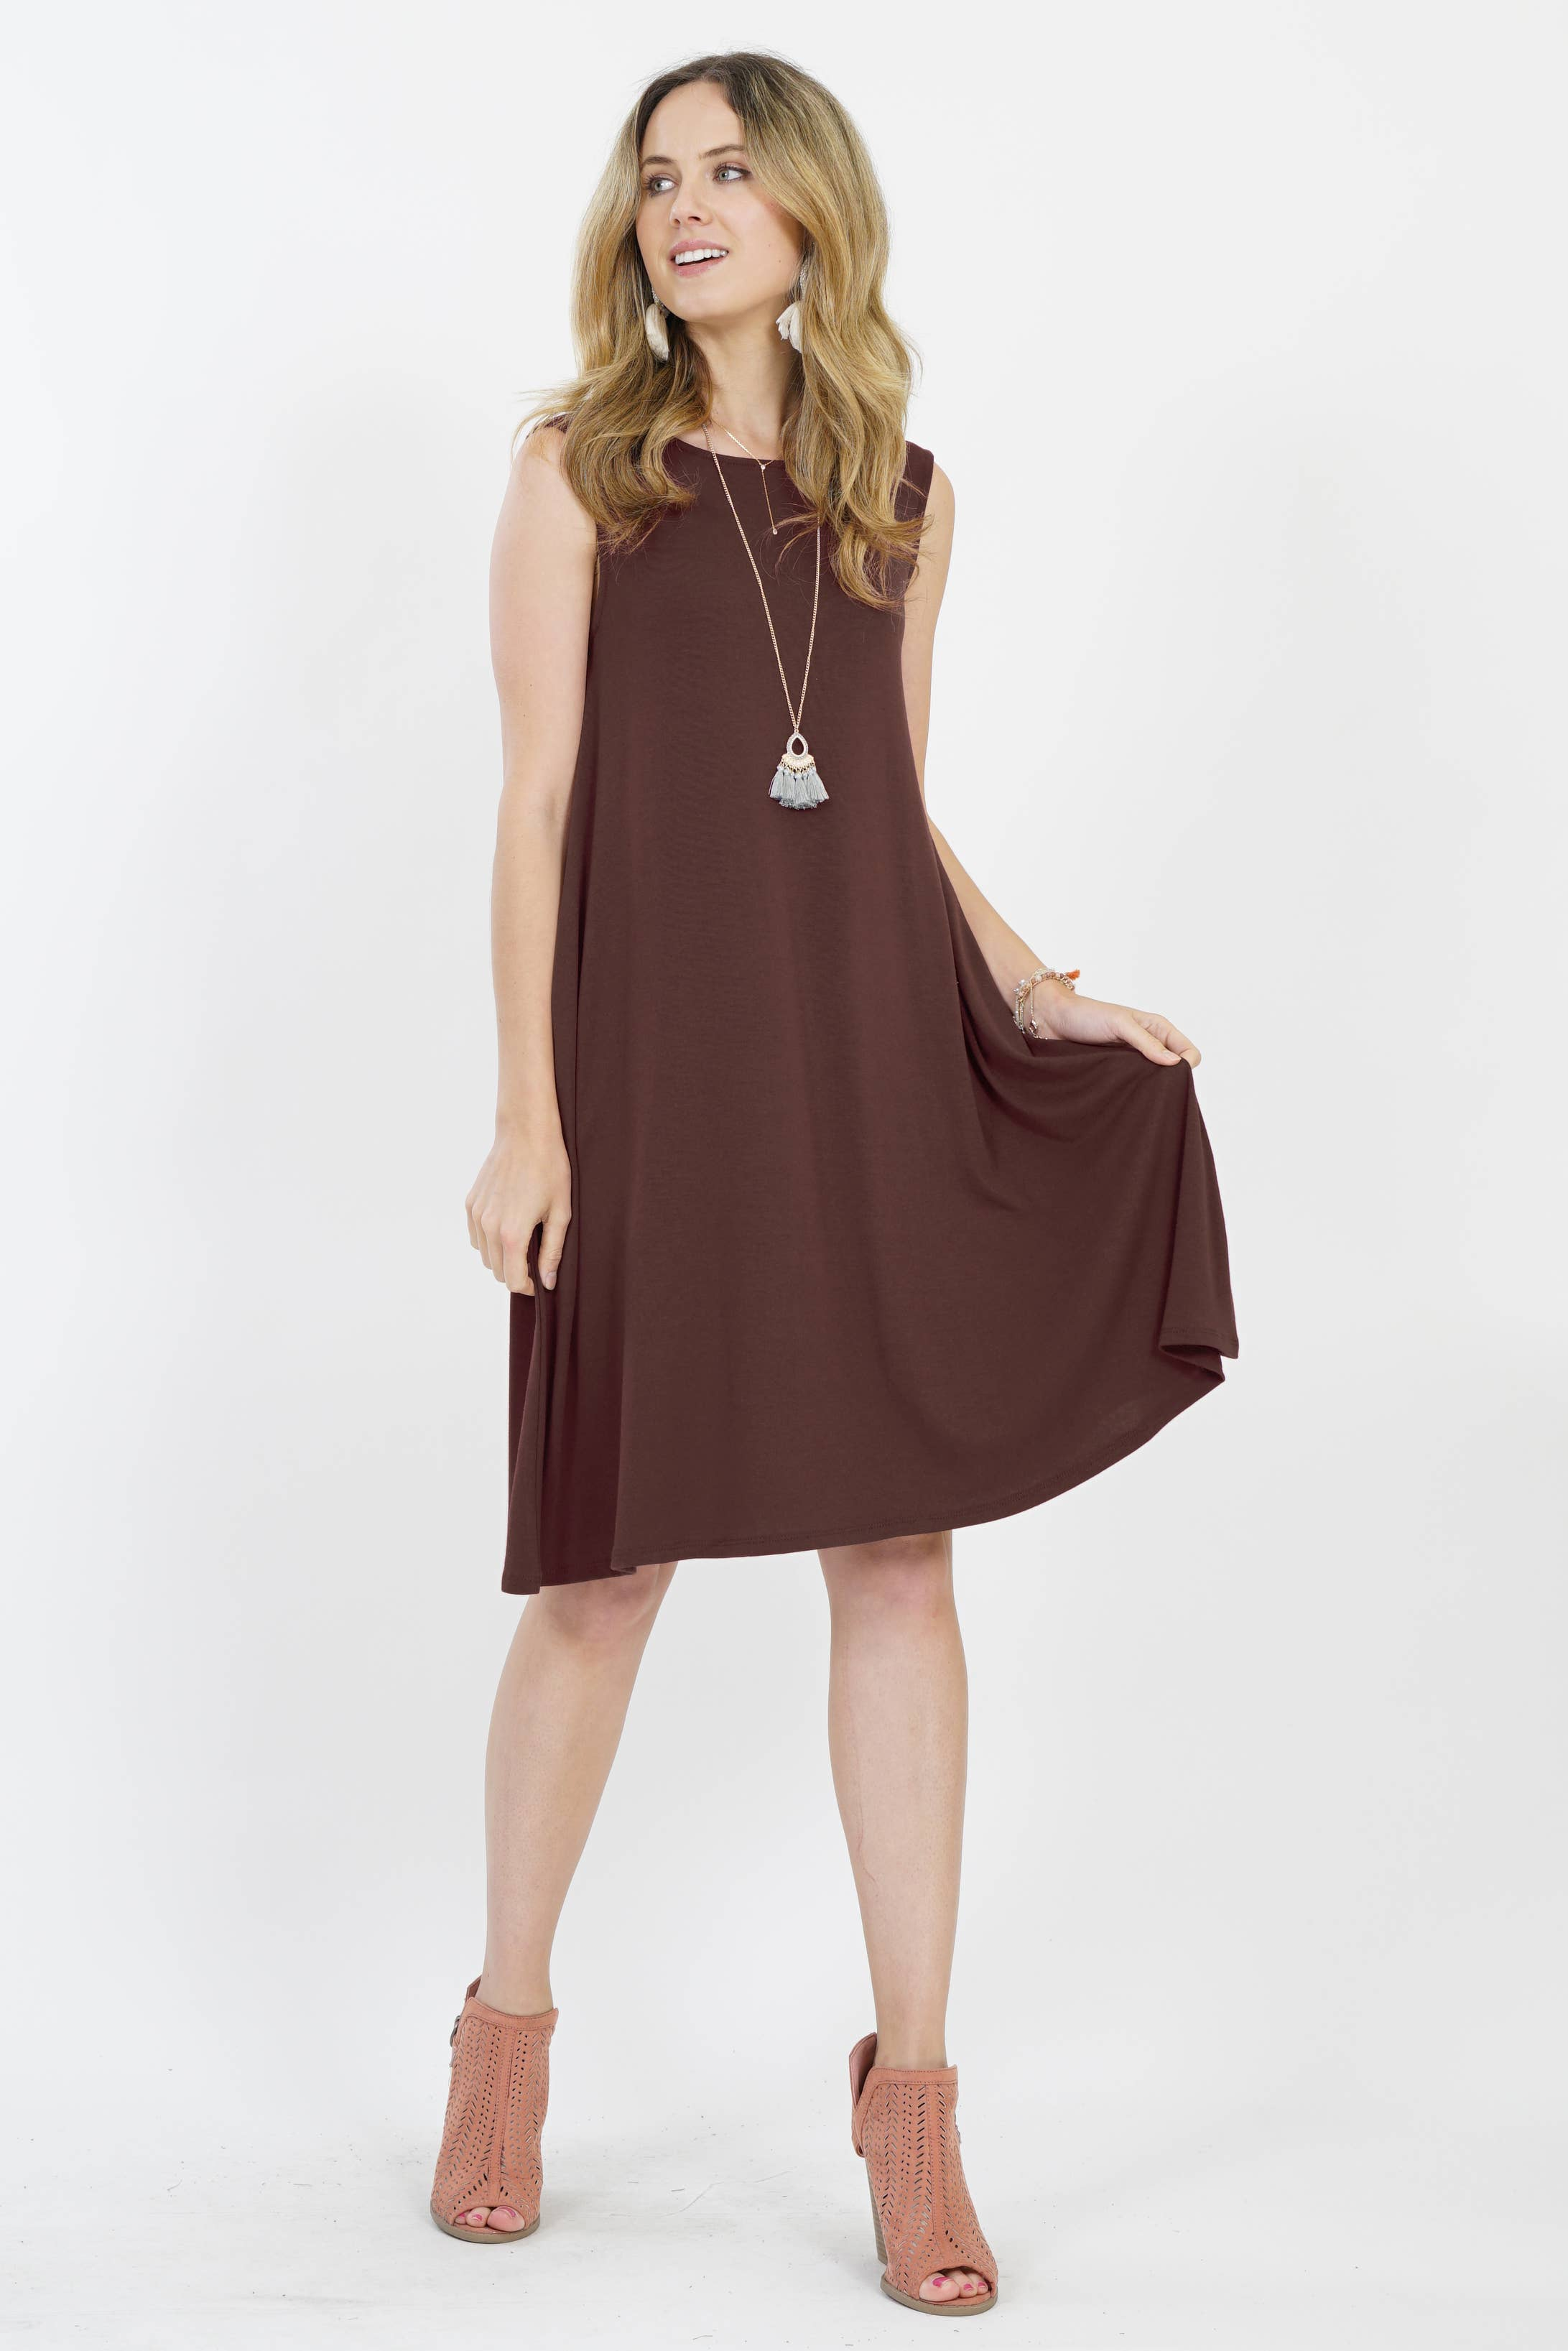 POCKET DRESS|| BROWN SLEEVELESS FLARED DRESS WITH SIDE POCKETS